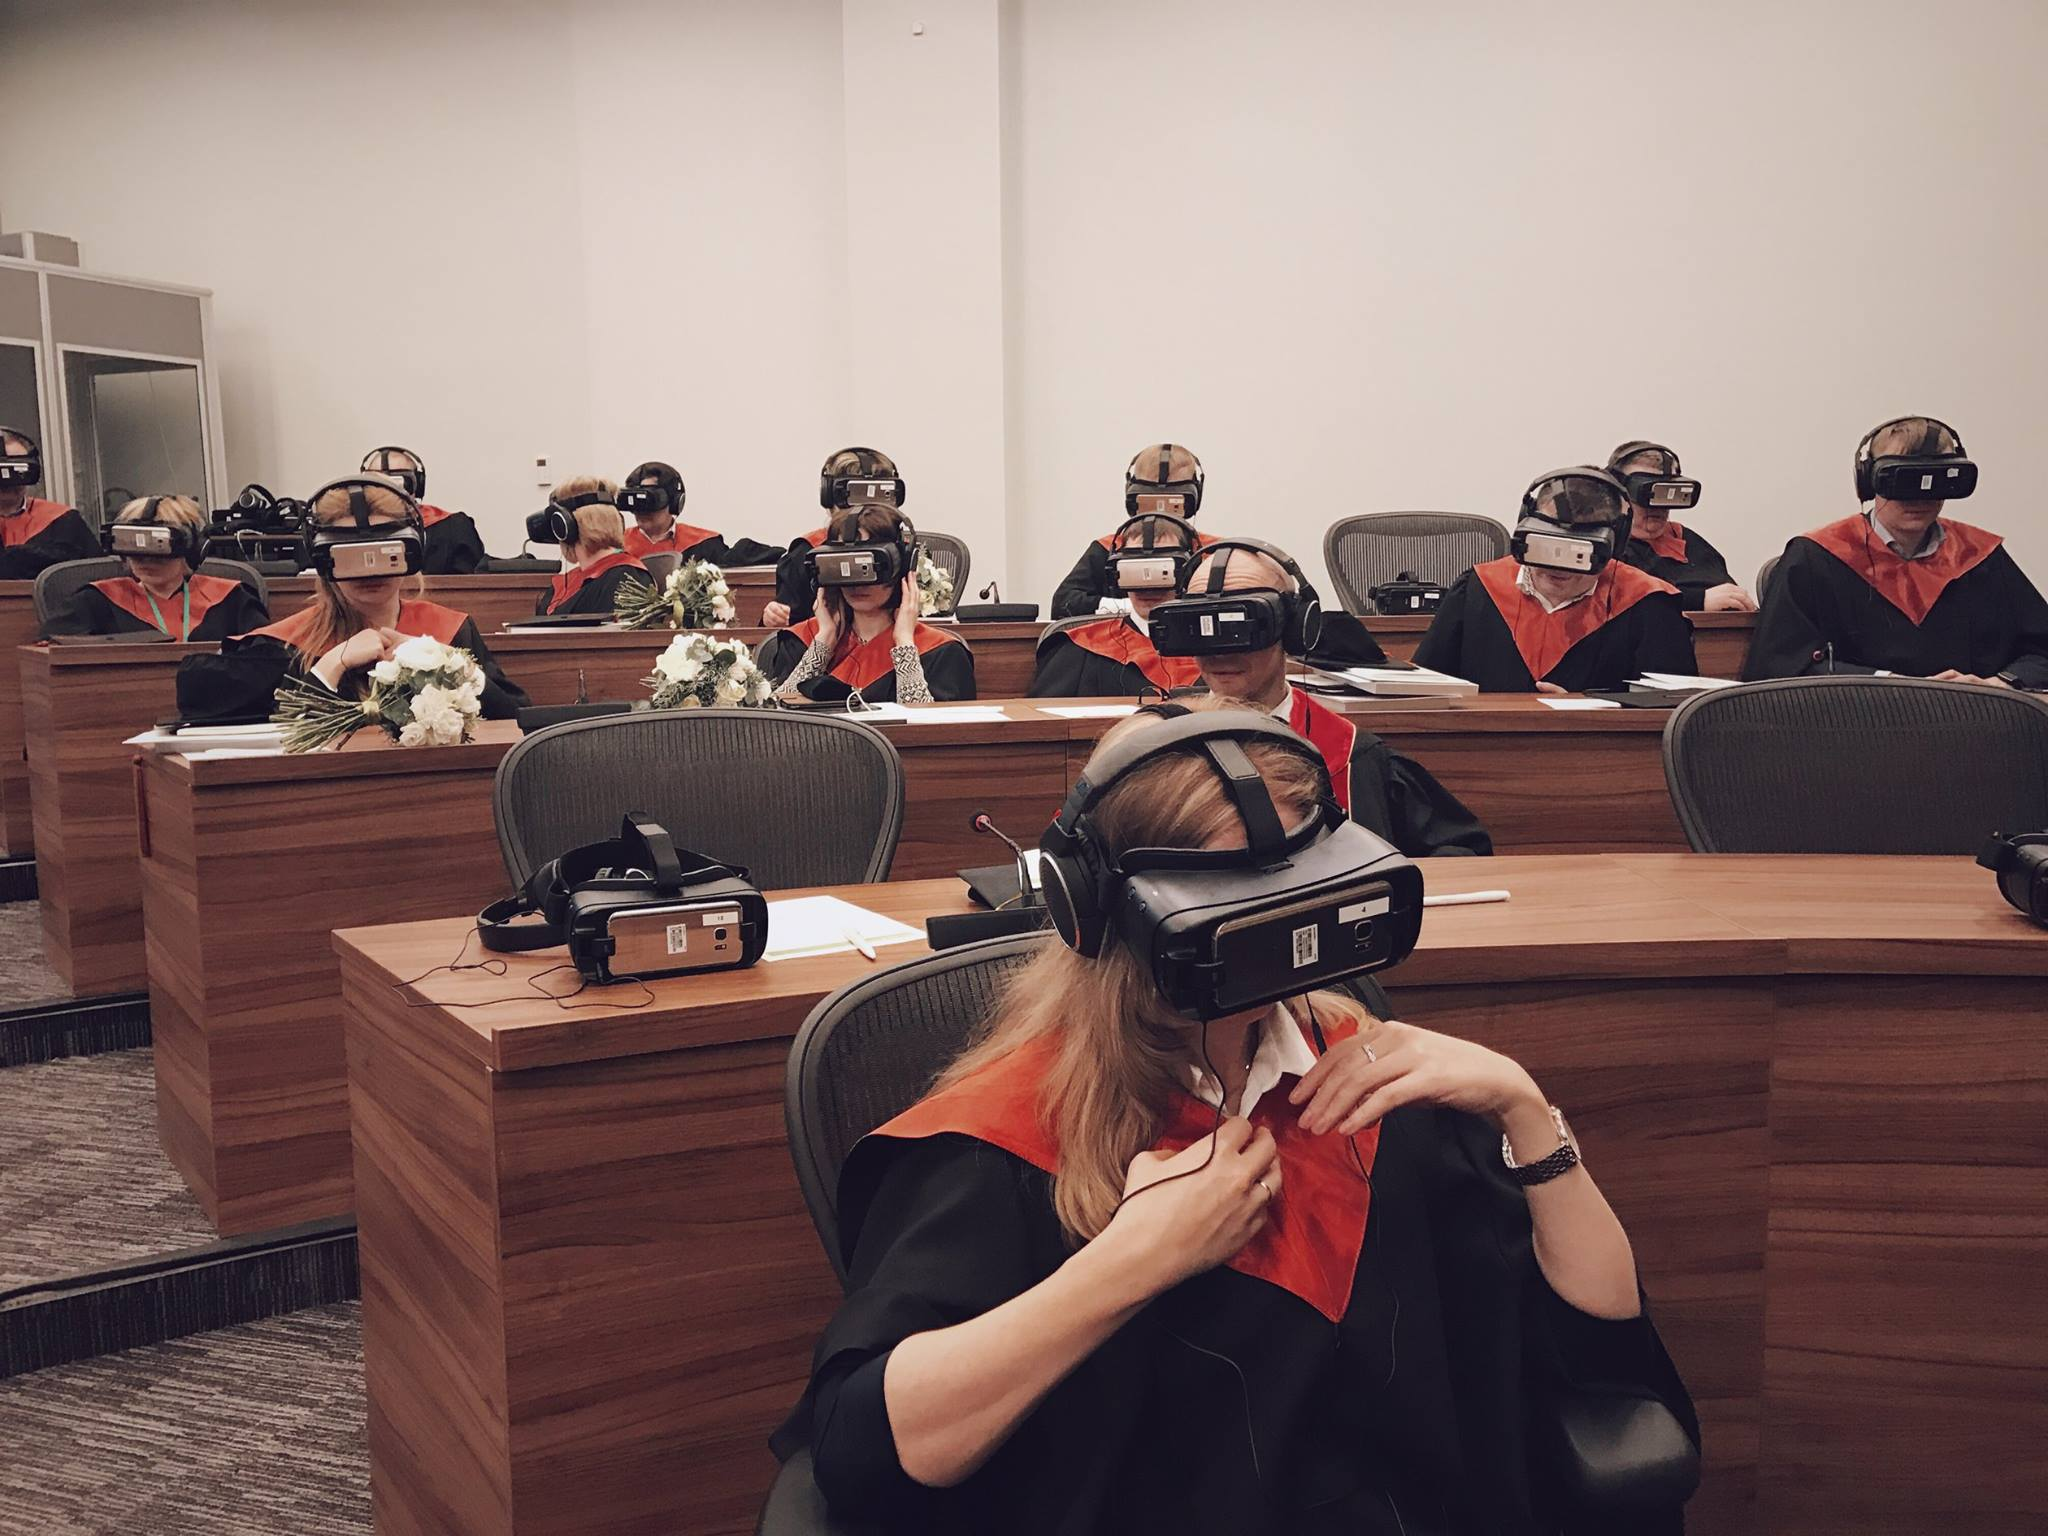 Students using virtual reality